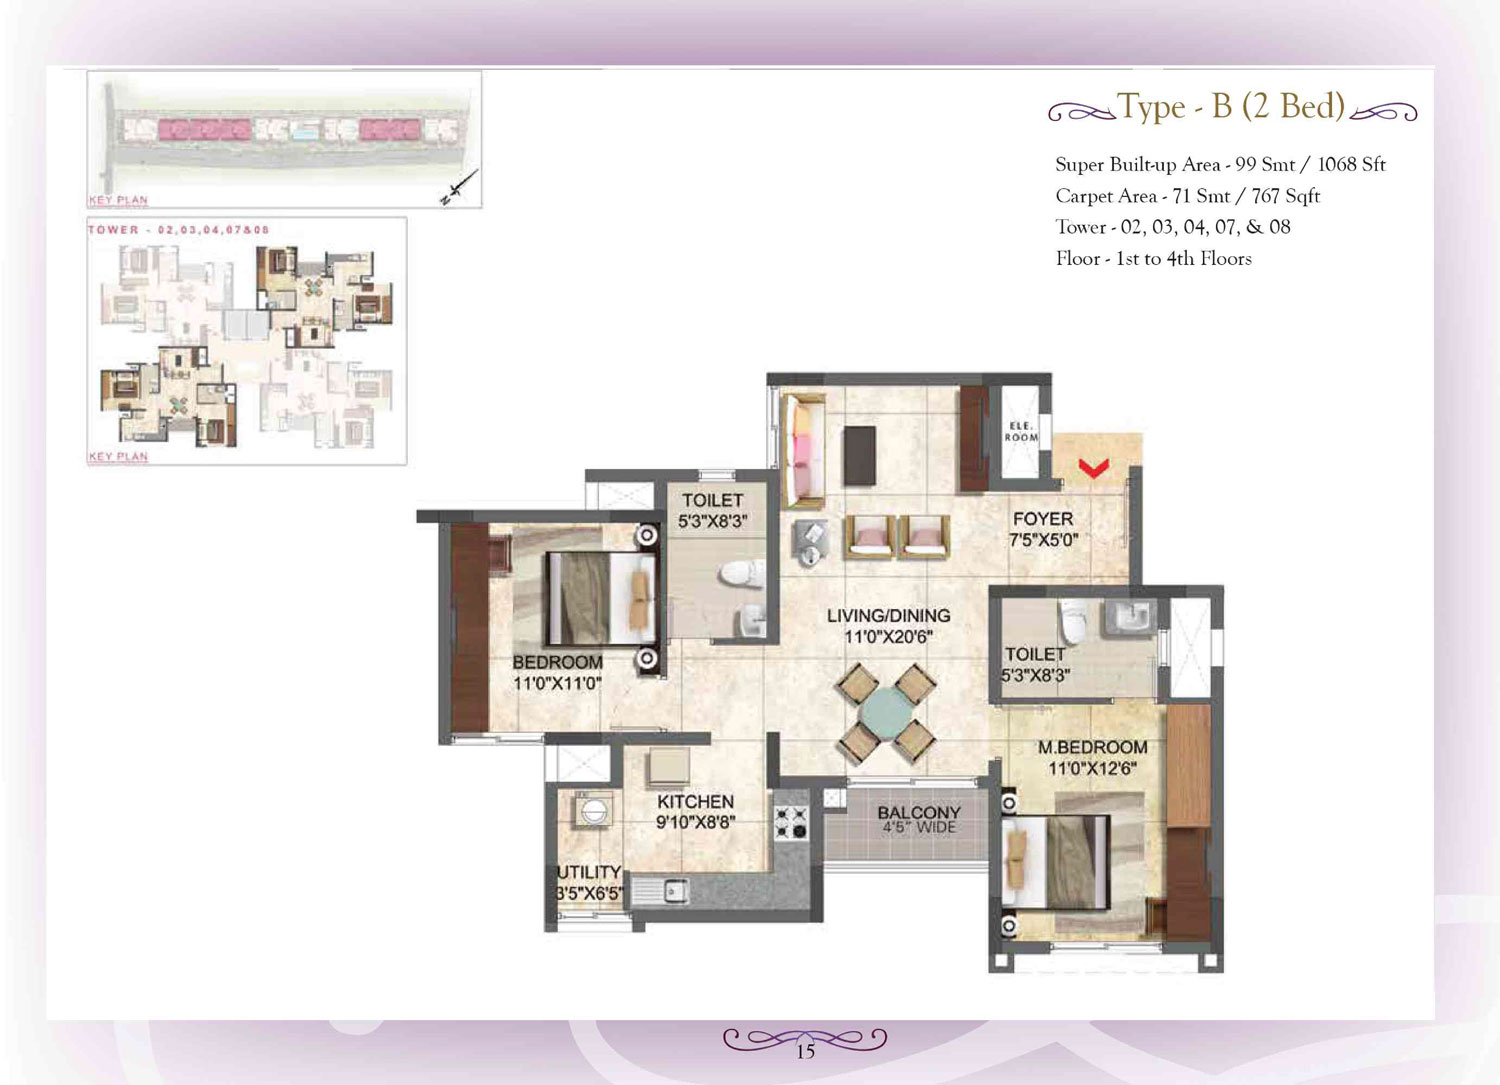 Type B - 2 Bed - 1068 Sq Ft